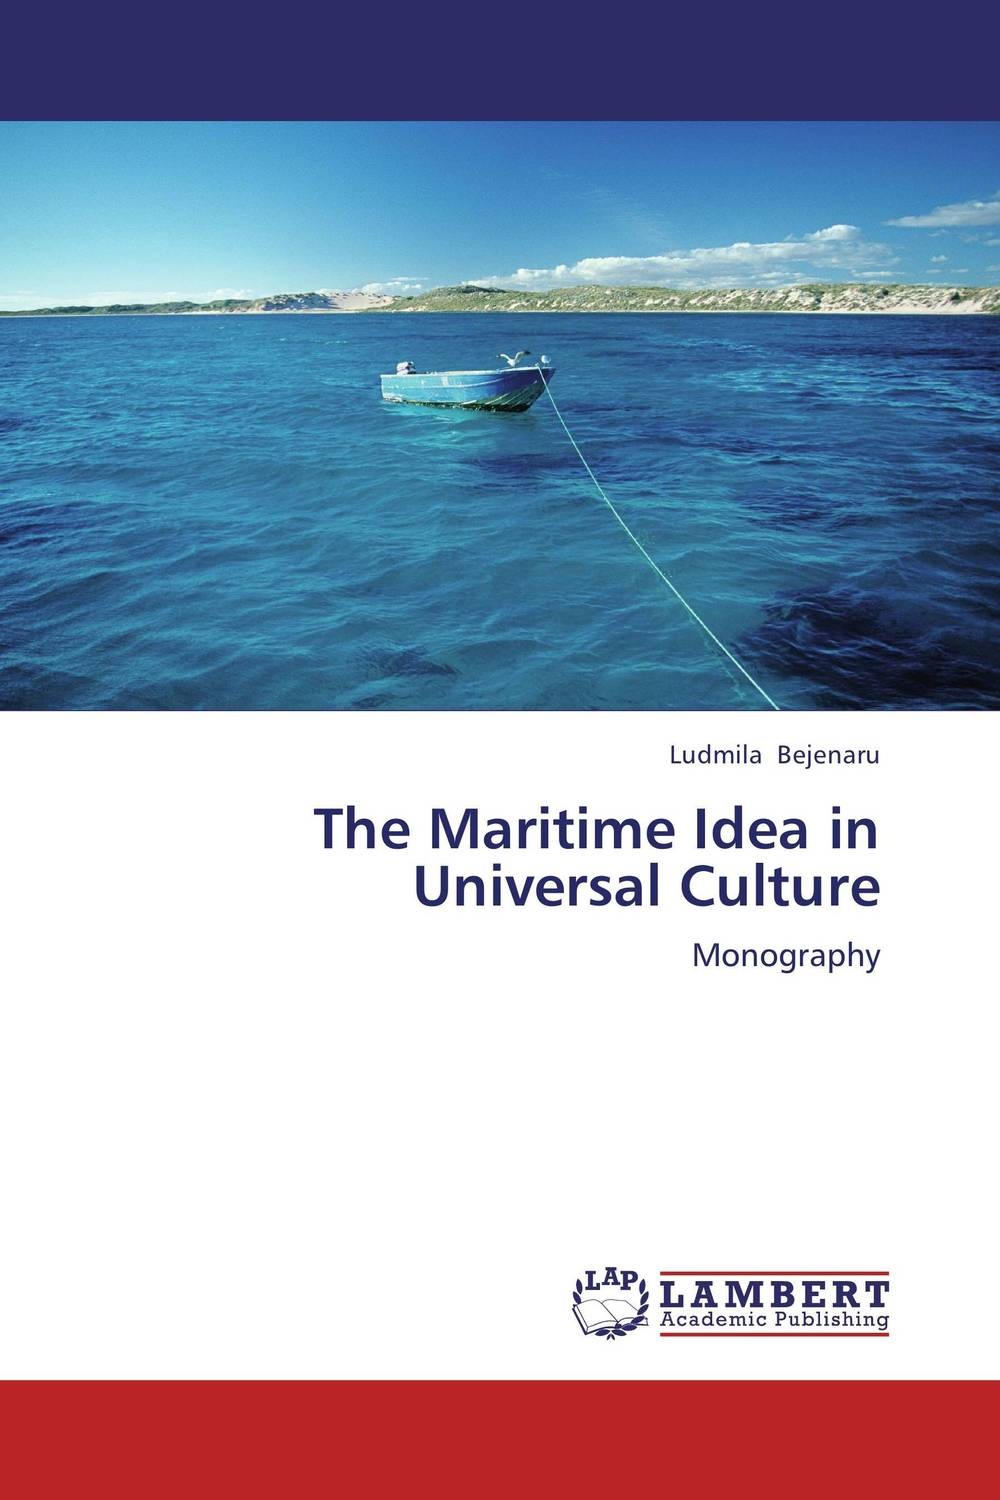 The Maritime Idea in Universal Culture venice a maritime republic